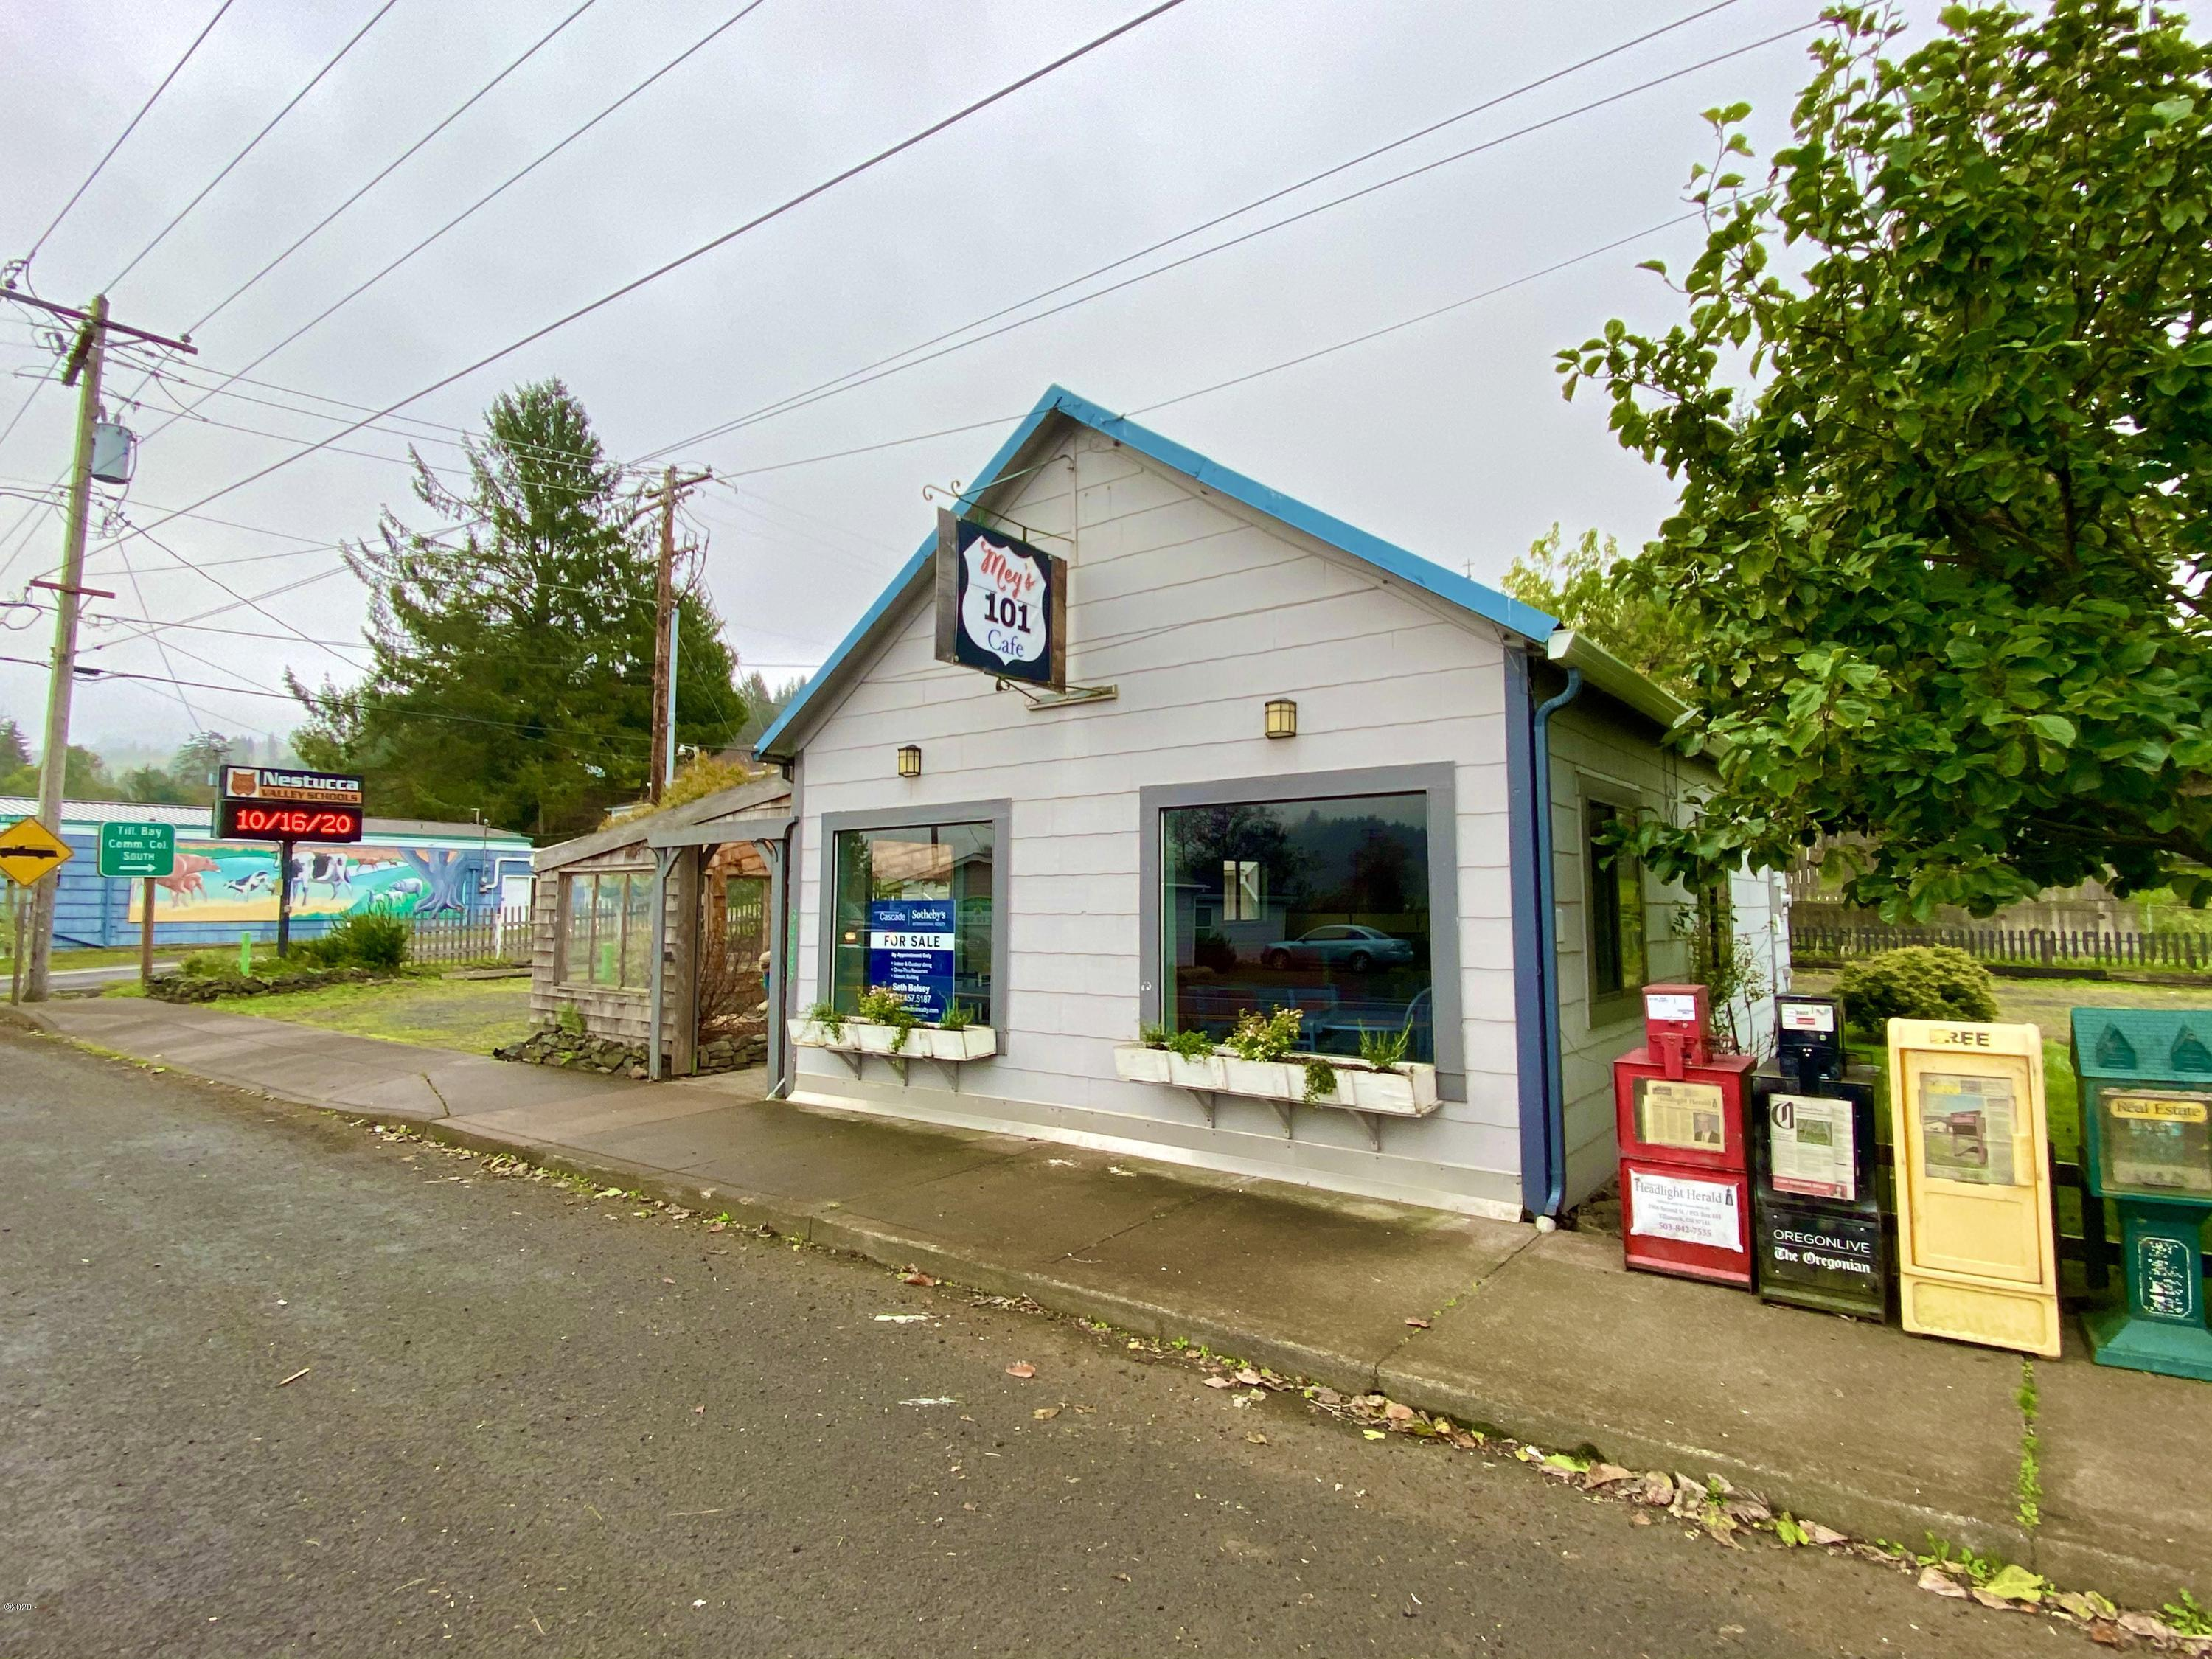 34445 Highway 101 S., Cloverdale, OR 97112